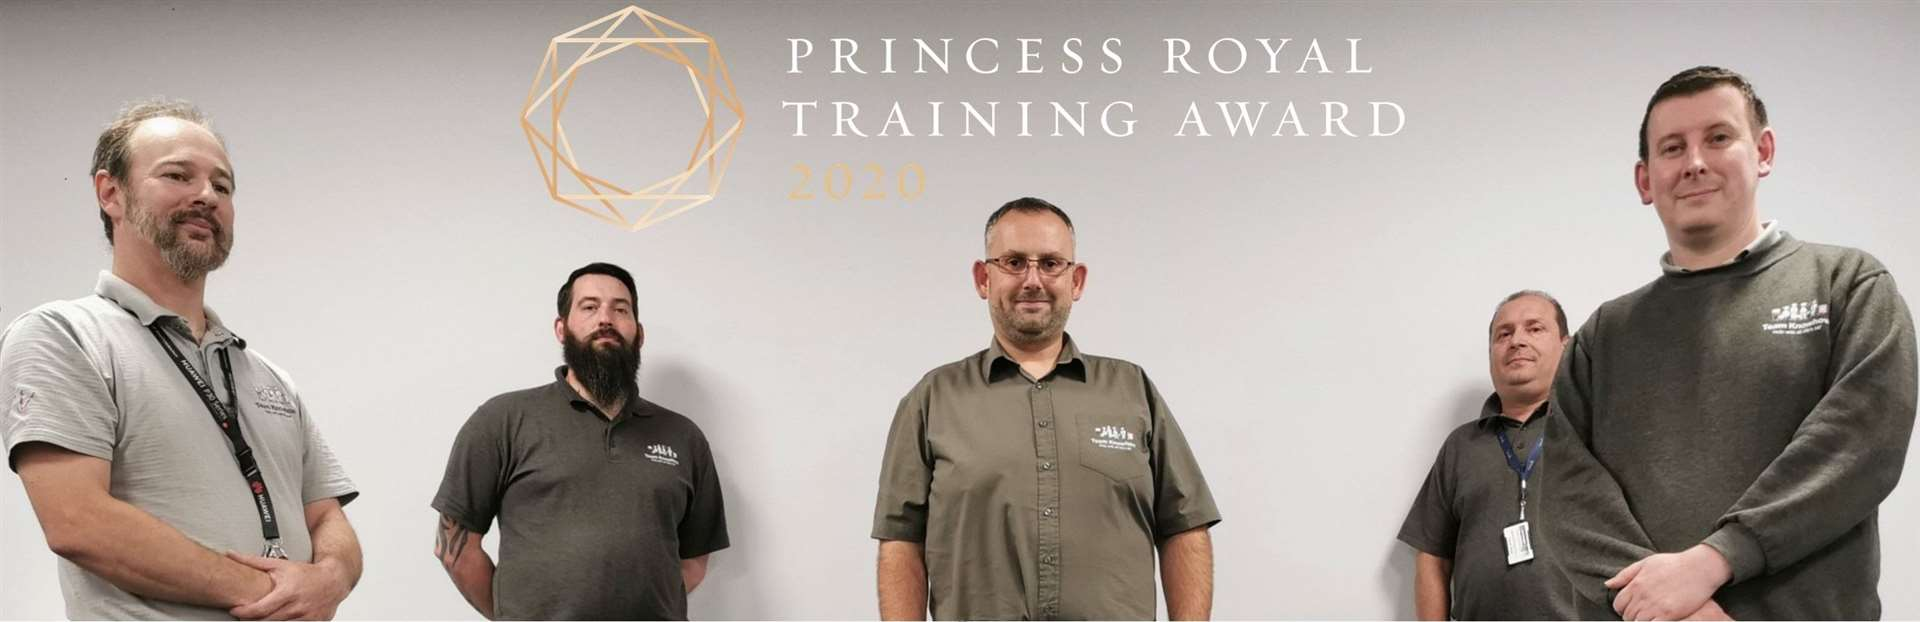 The award-winning Team Knowhow includes, left to right (back) Rikki Kissane and Darran West (middle) Anthony Overton (front) Chris Lucas and Martyn Cuthbert.